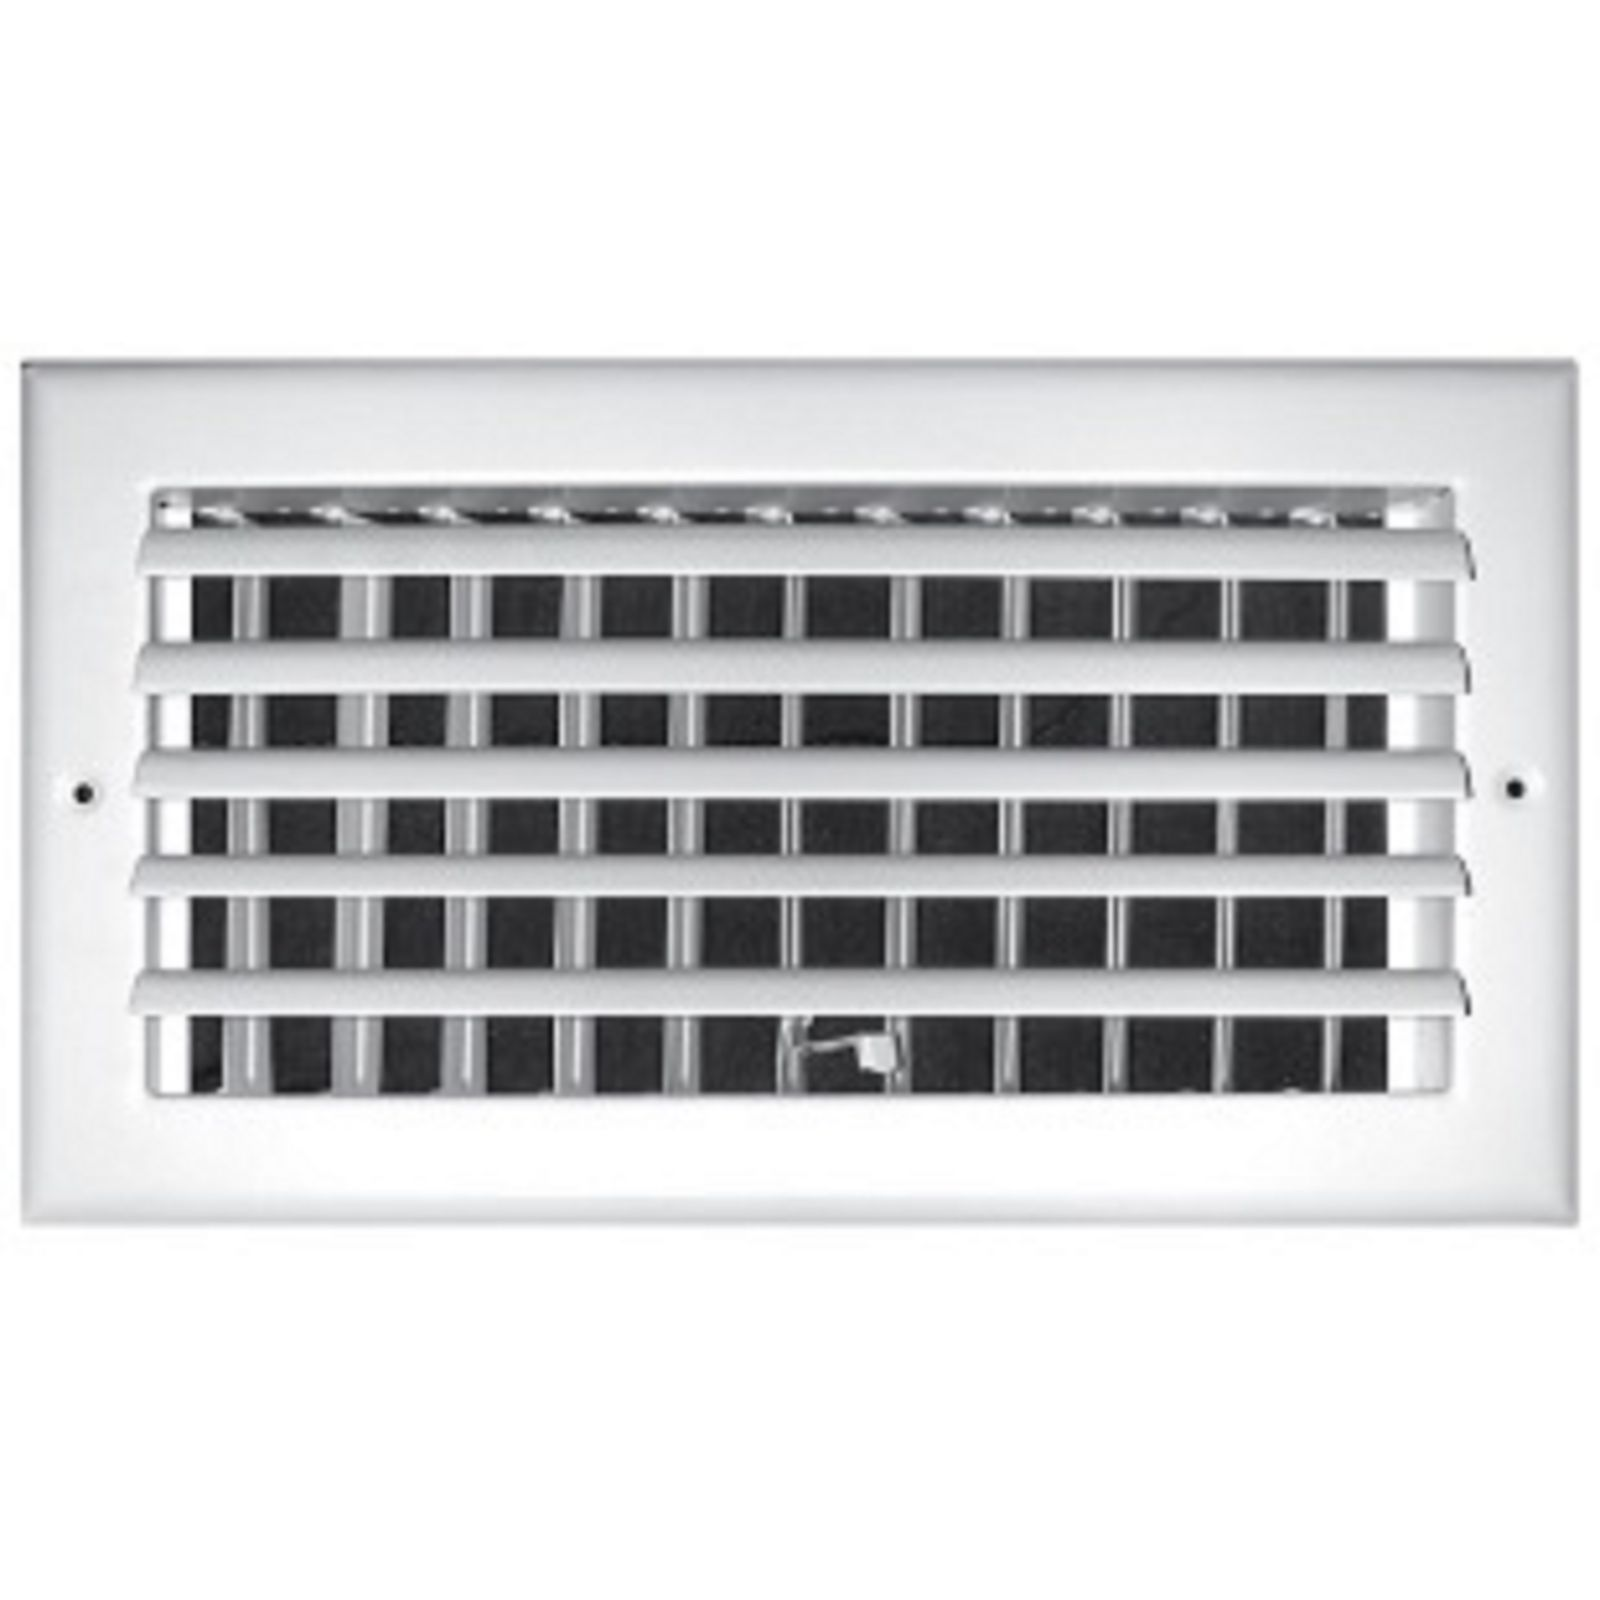 "TRUaire 301M 14X08 - Steel Adjustable Curved Blade Wall/Ceiling Register With Multi Shutter Damper, 1-Way, White, 14"" X 08"""